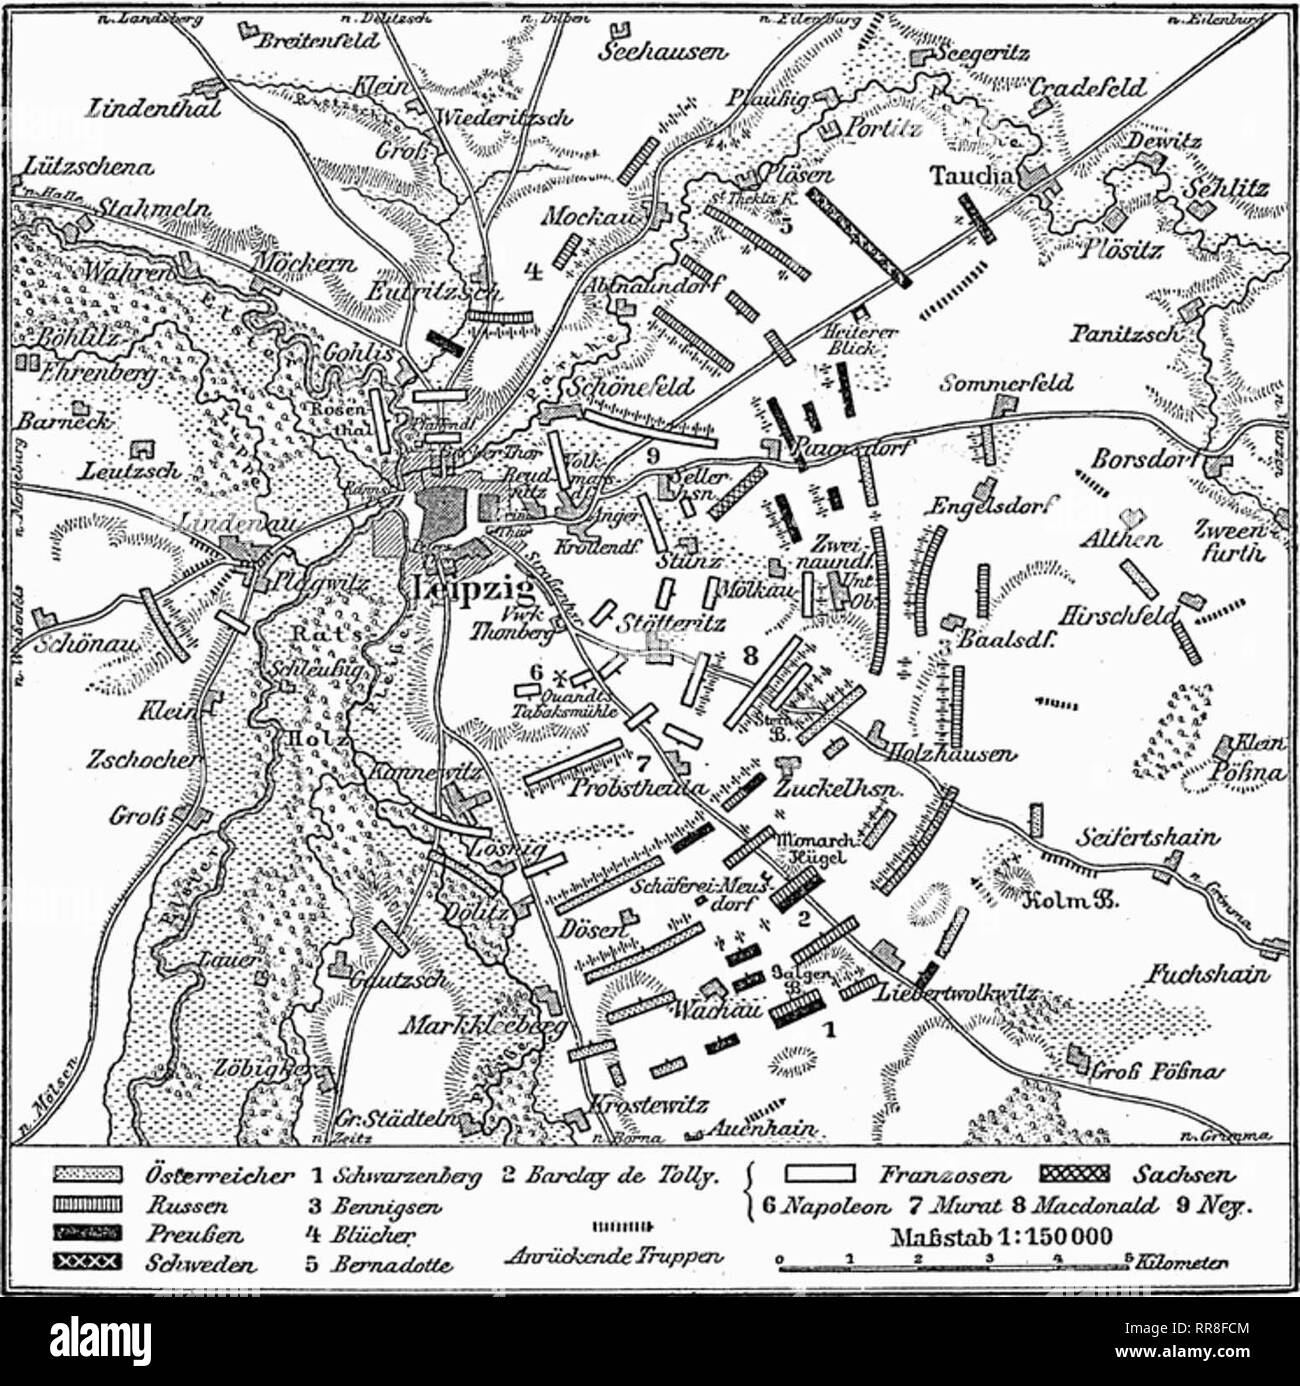 A map from Meyers Konversations-Lexikon depicting the Battle of Leipzig on 18 October 1813 - Stock Image